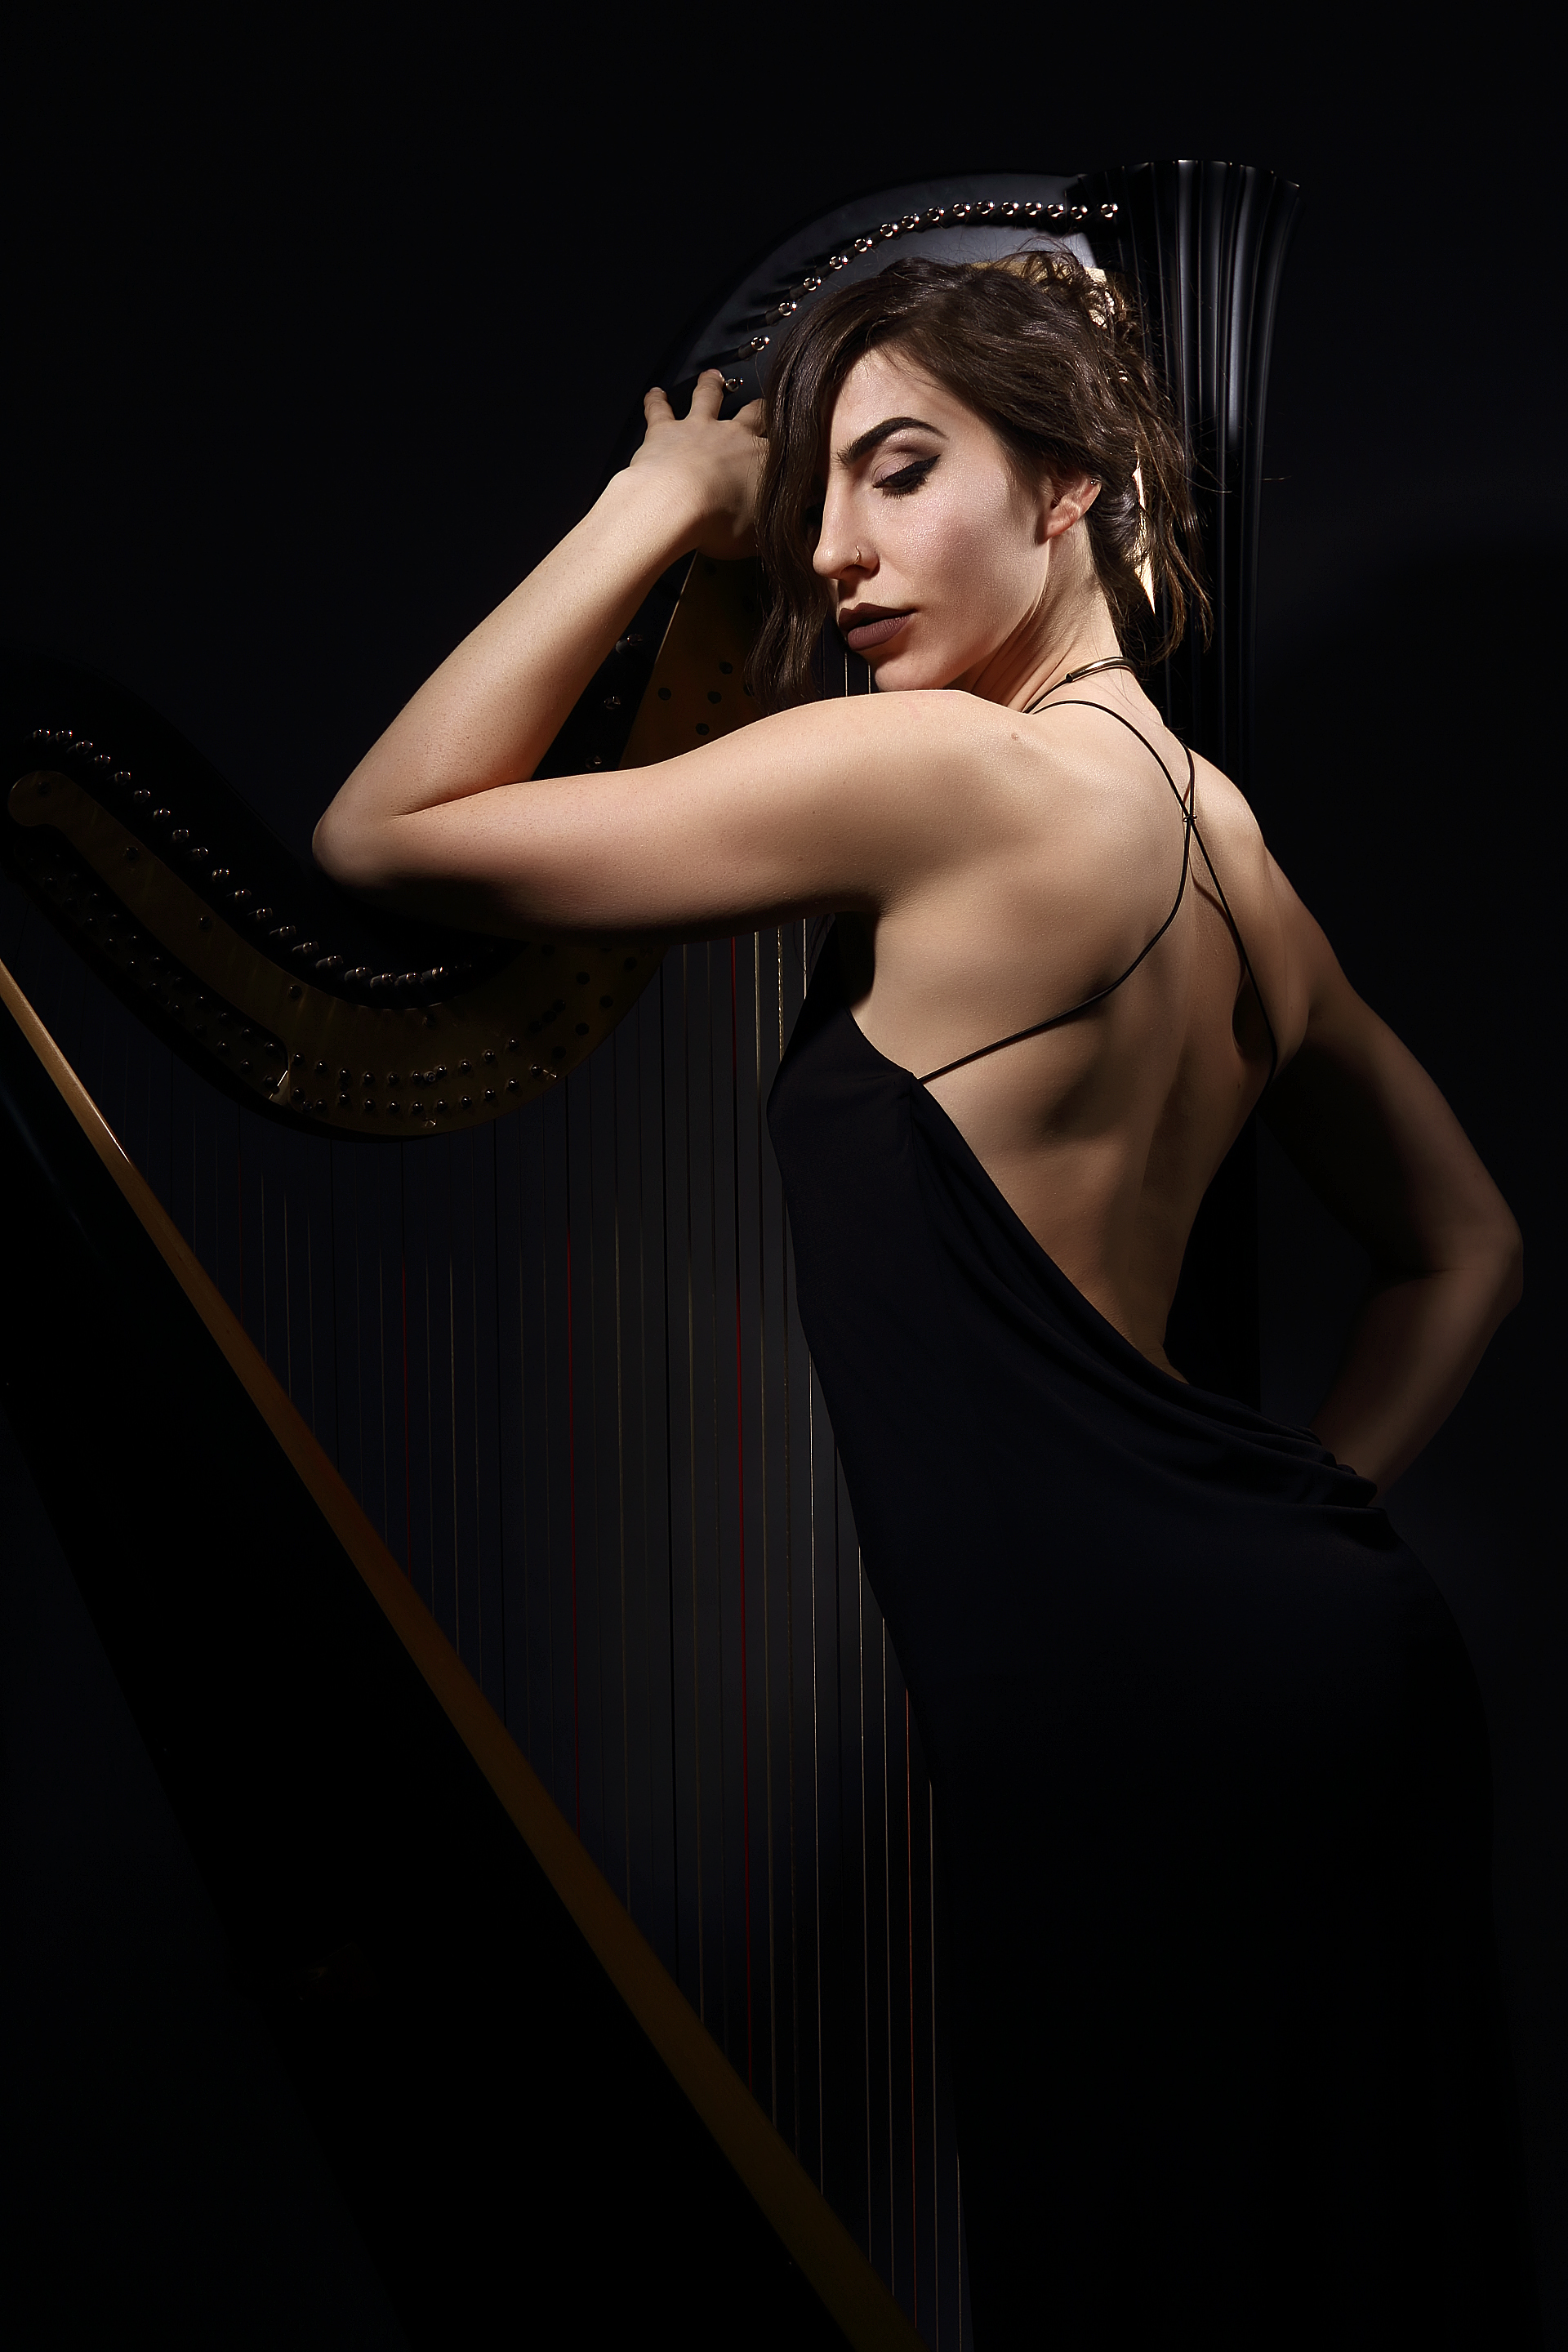 Stephaine Babirak , harpist, model and performer